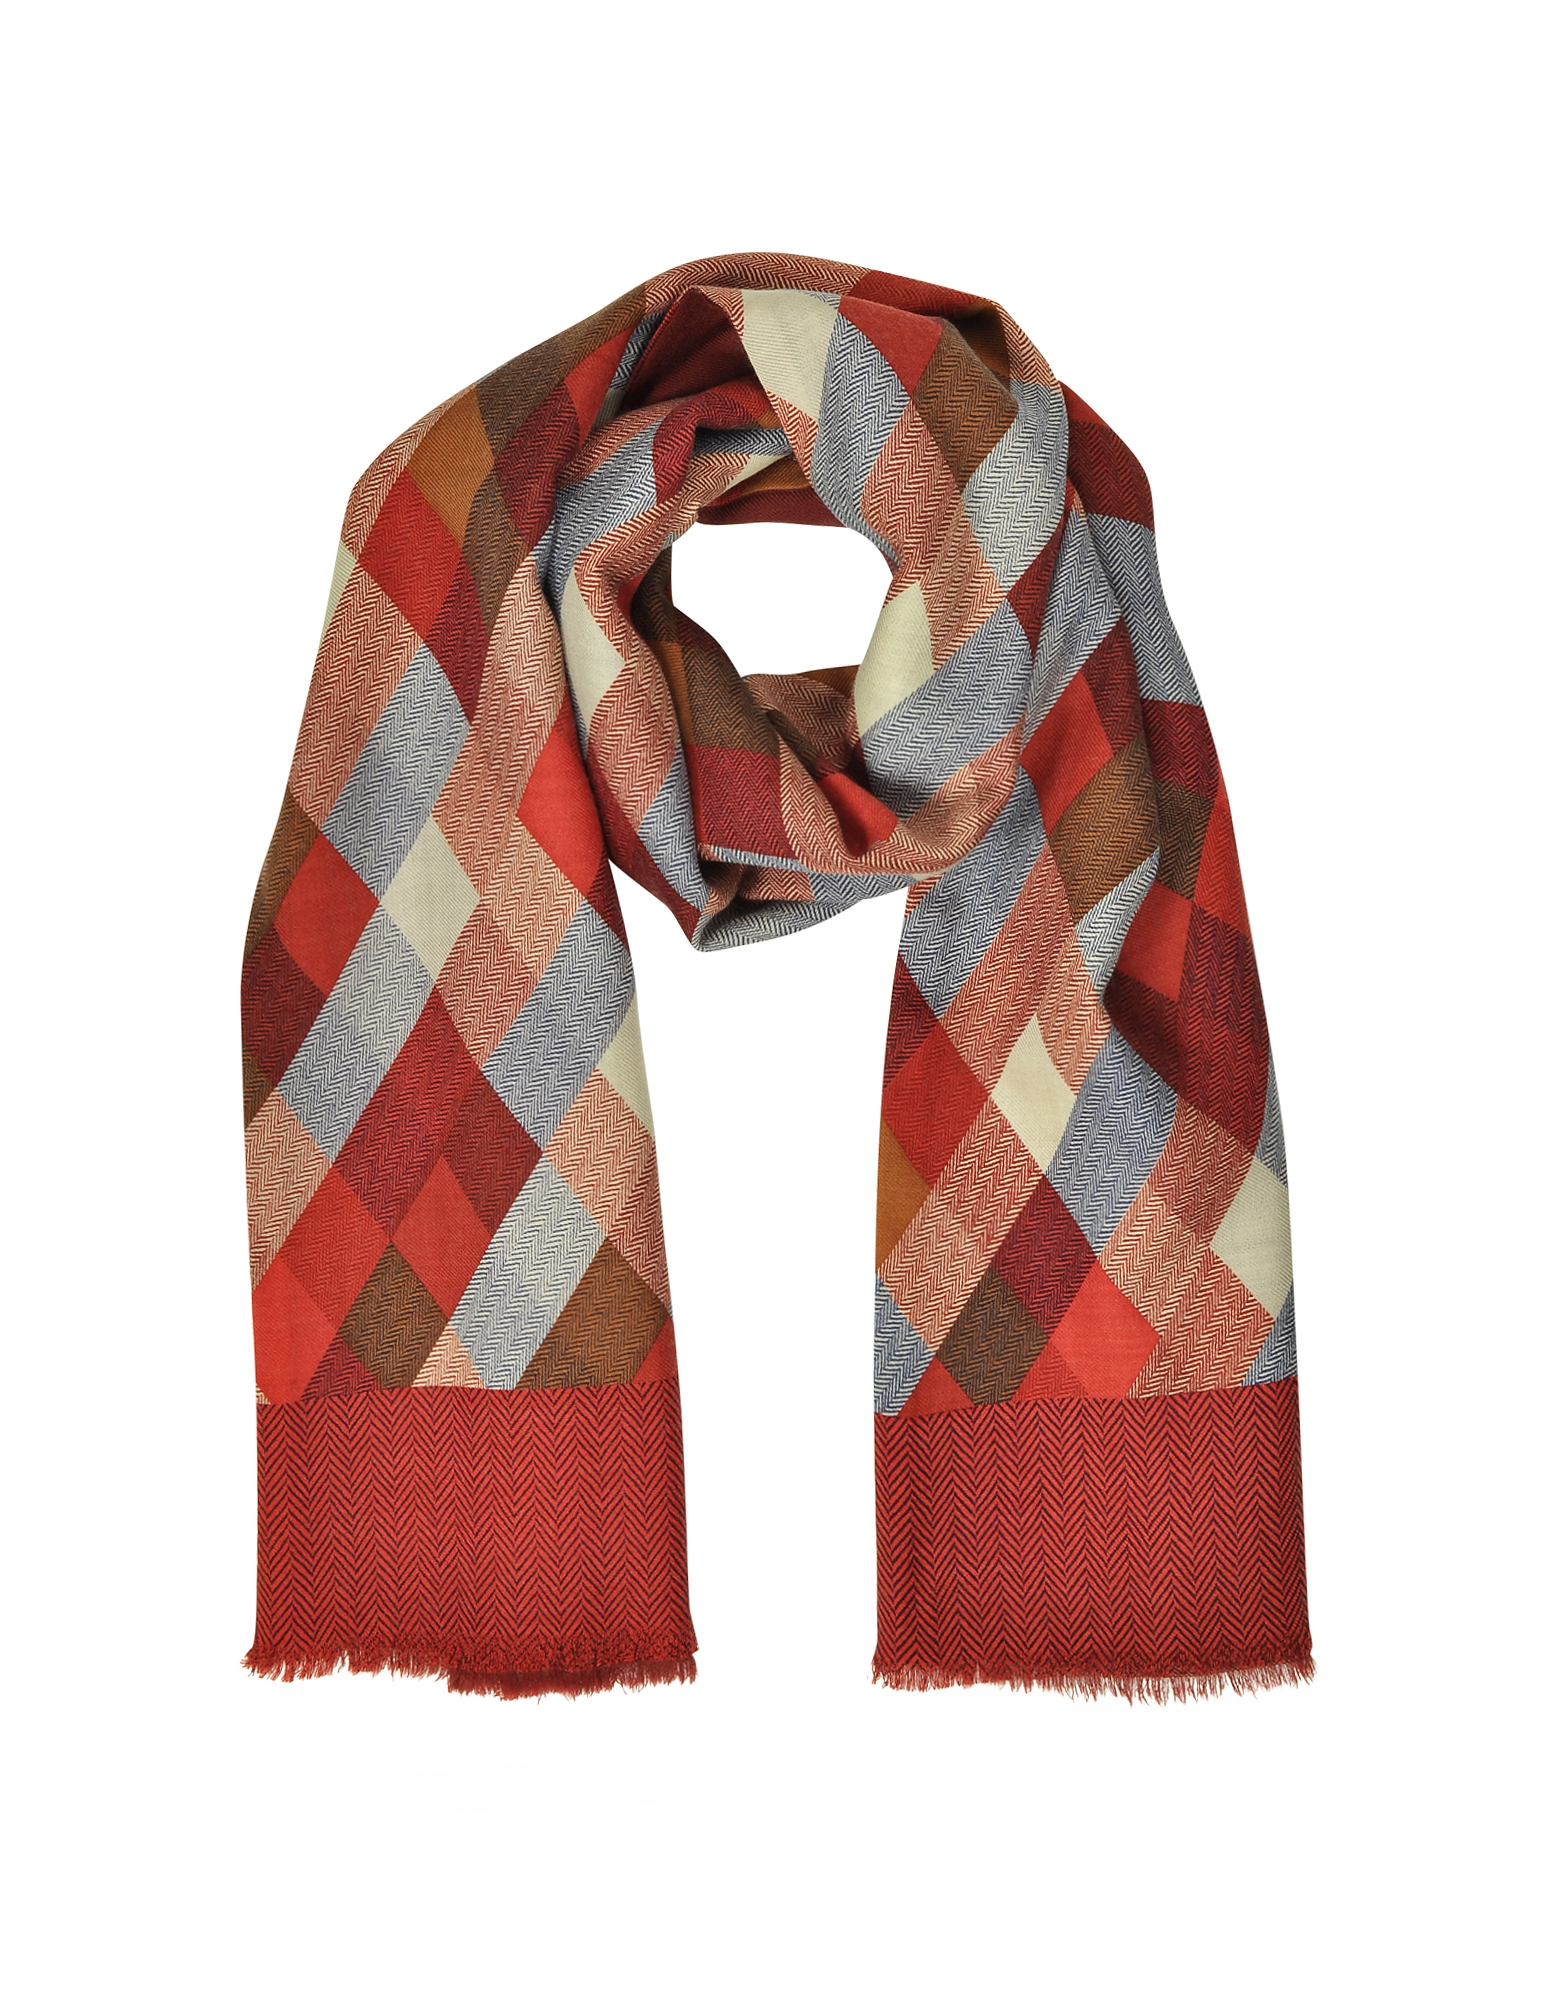 Laura Biagiotti Men's Scarves, Diamond Printed Wool, Silk and Cashmere Long Scarf